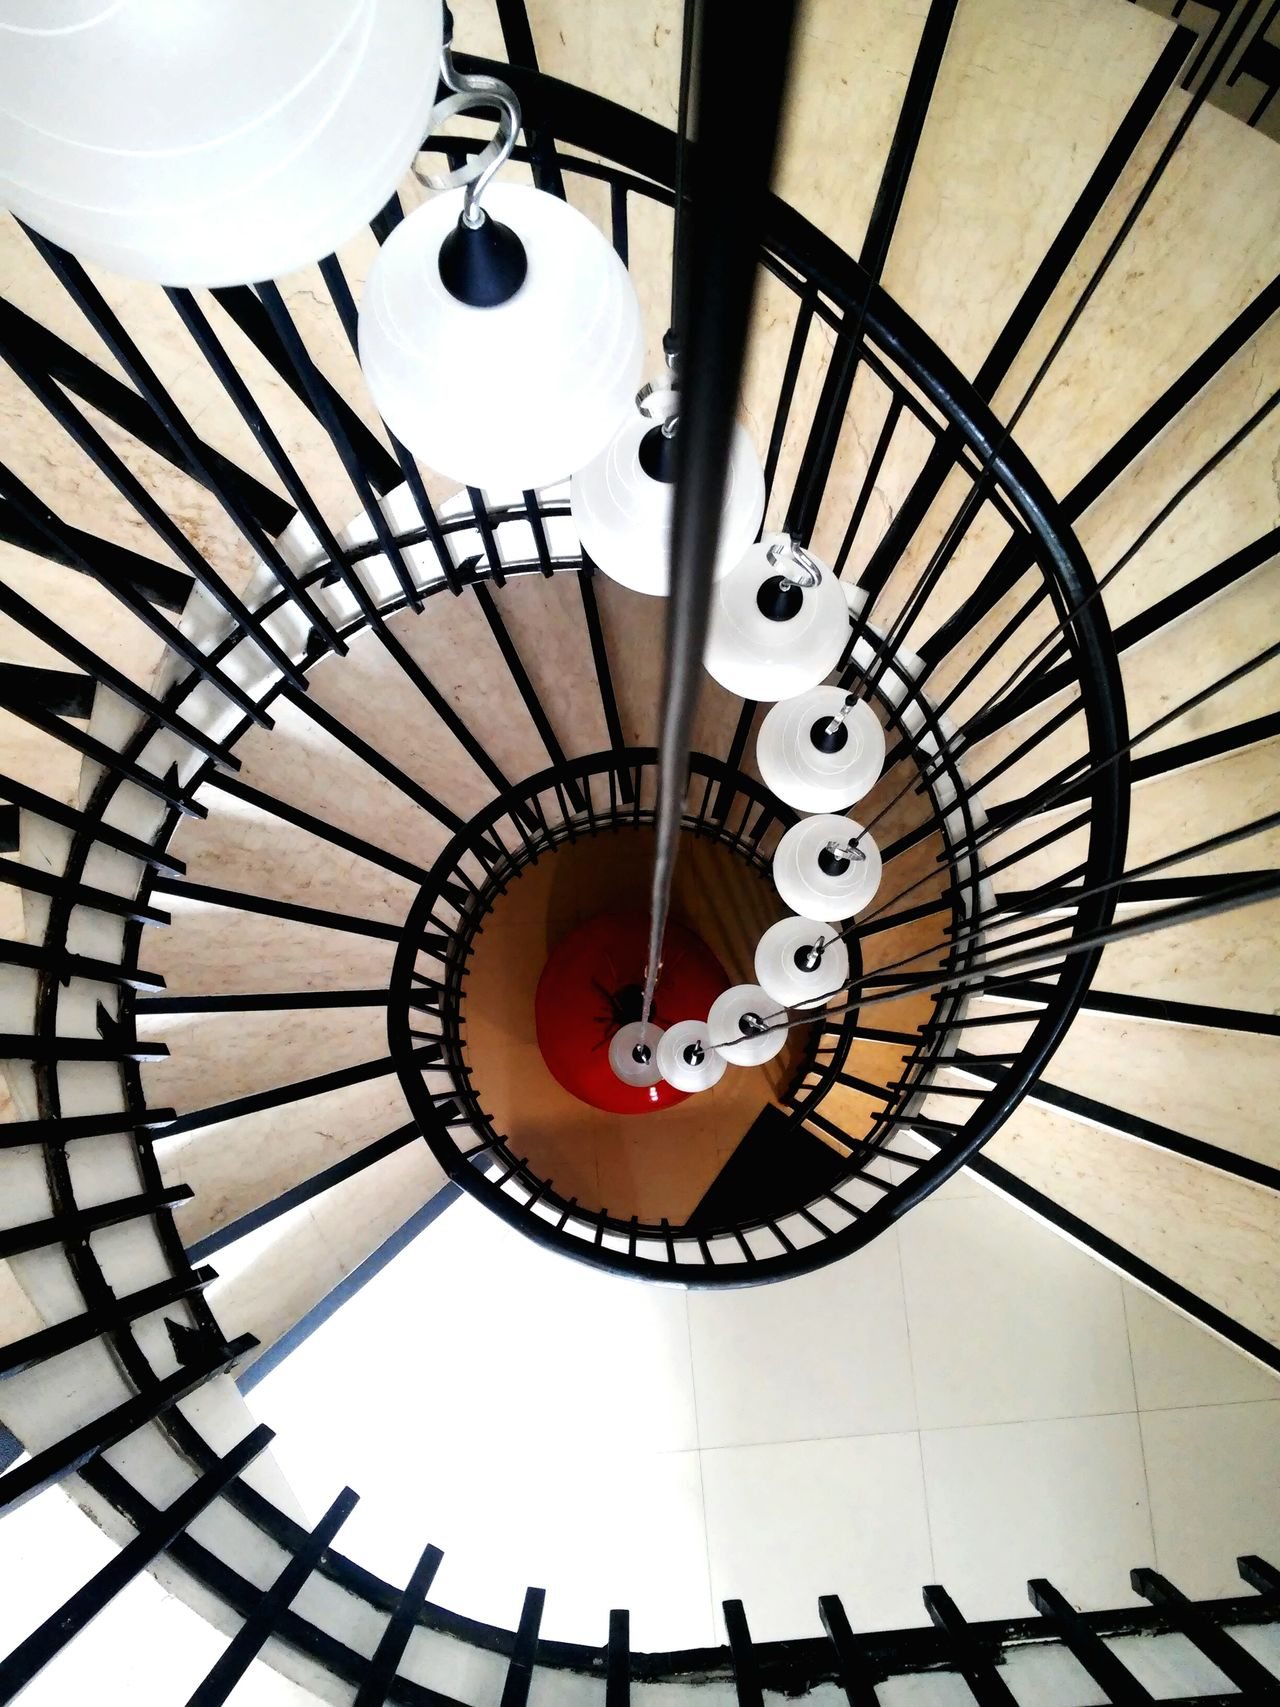 Circular Spiral Steps And Staircases Staircase Railing High Angle View Spiral Staircase Spiral Stairs Structure Lamp Stairs Interior